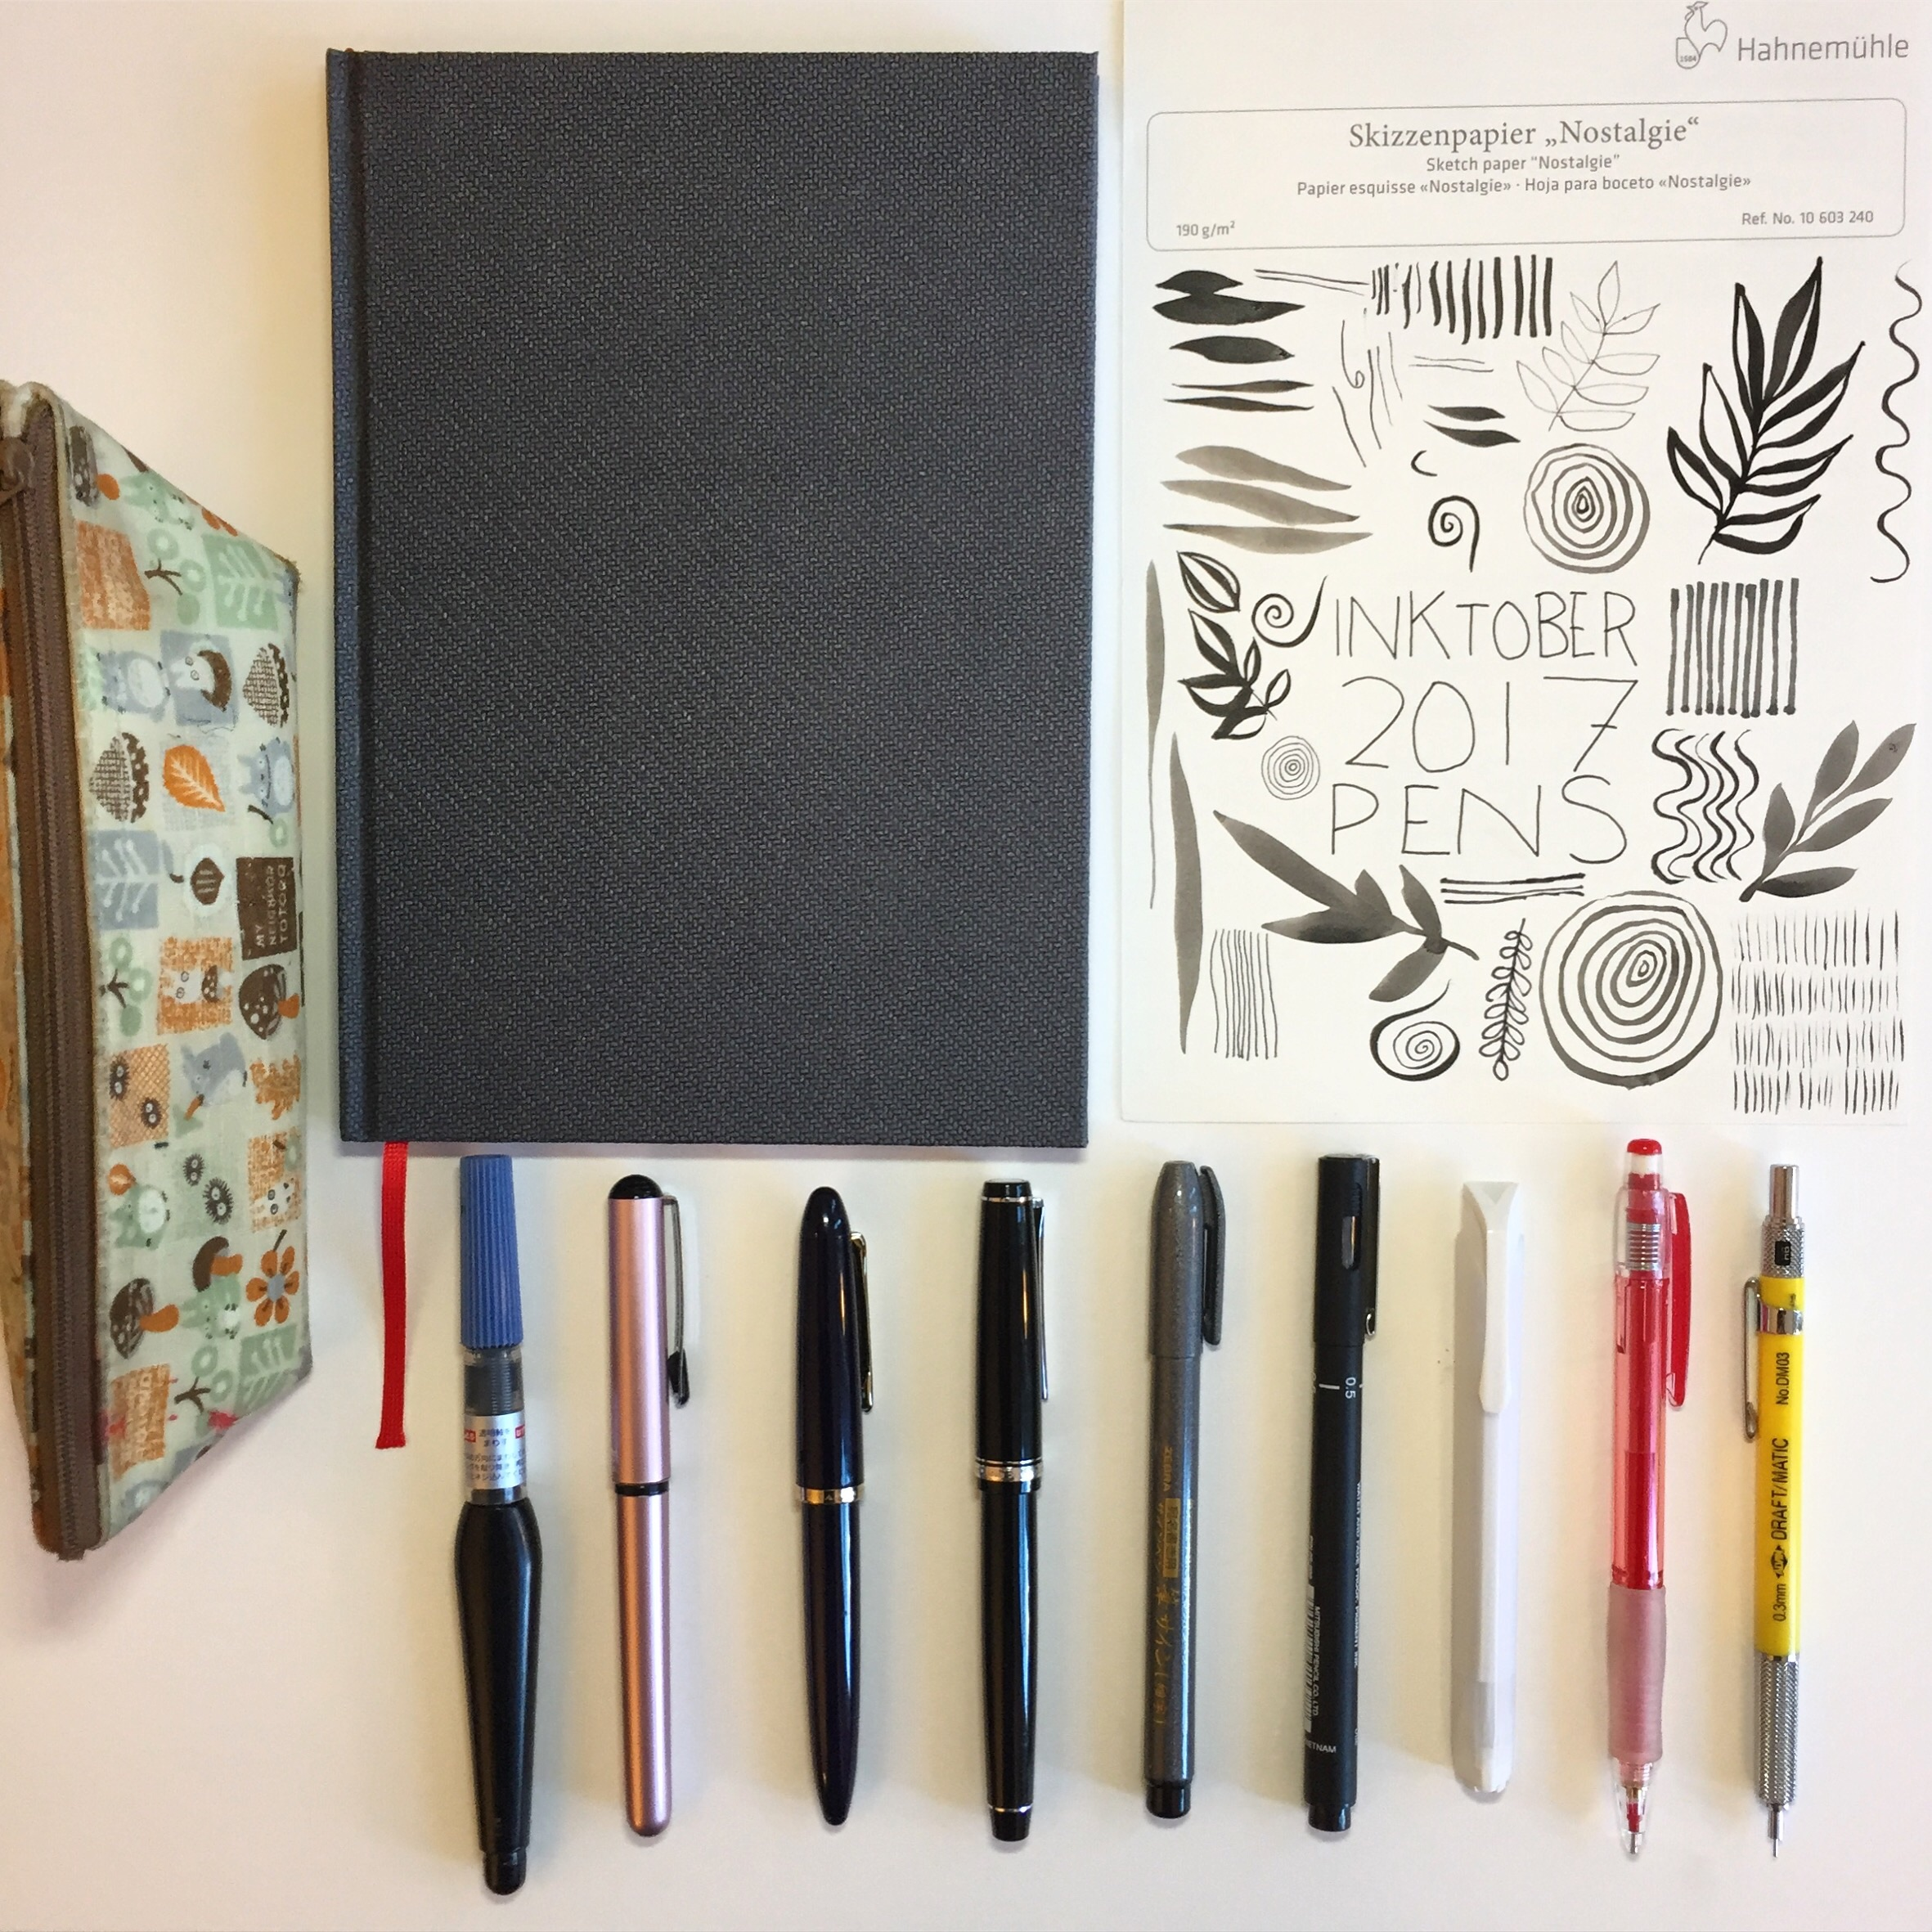 My tools for Inktober 2017